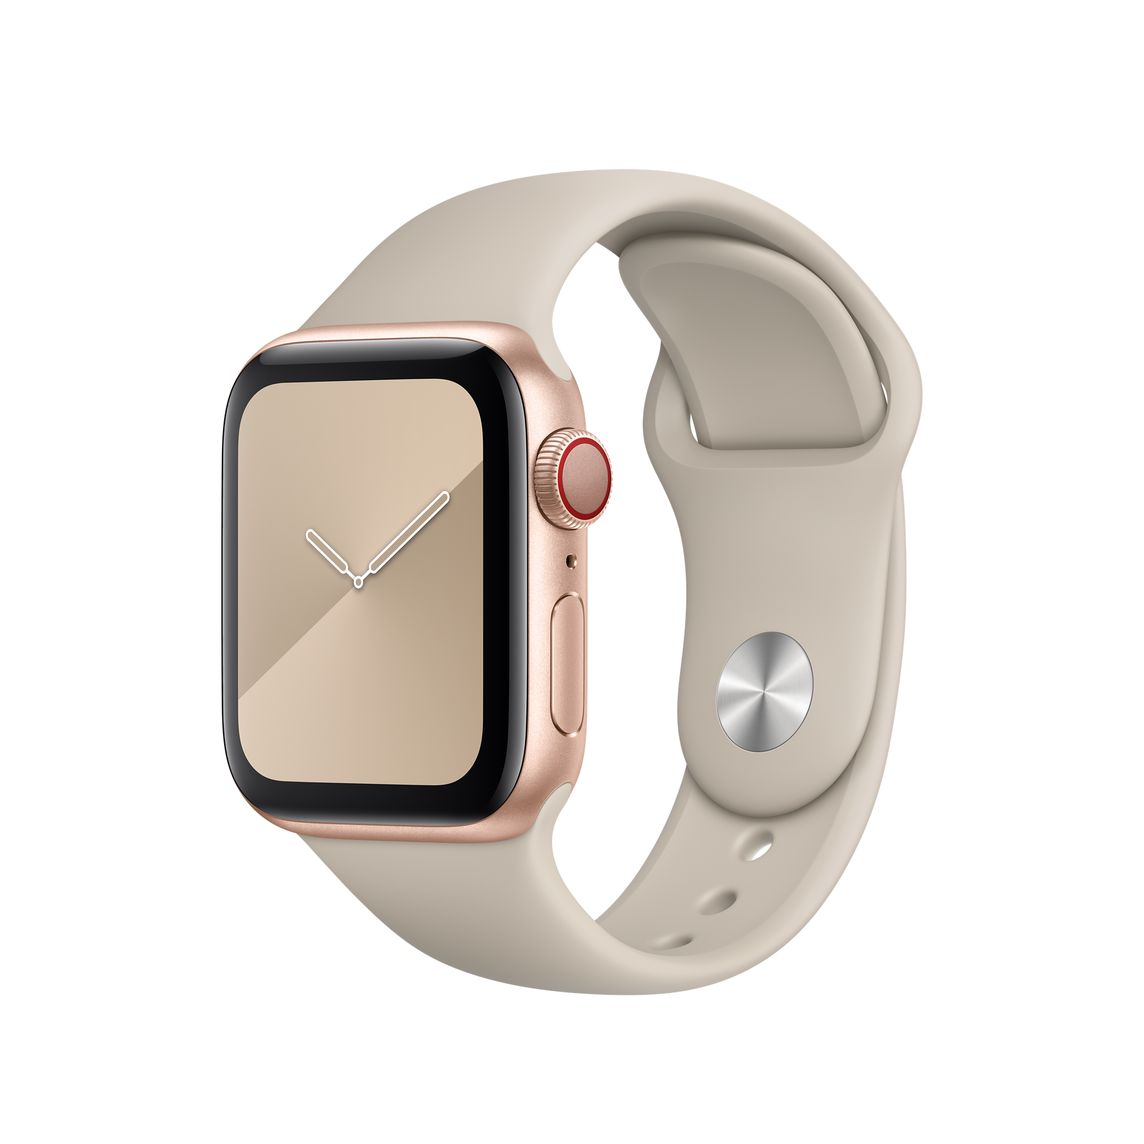 40mm Stone Sport Band – Regular Apple